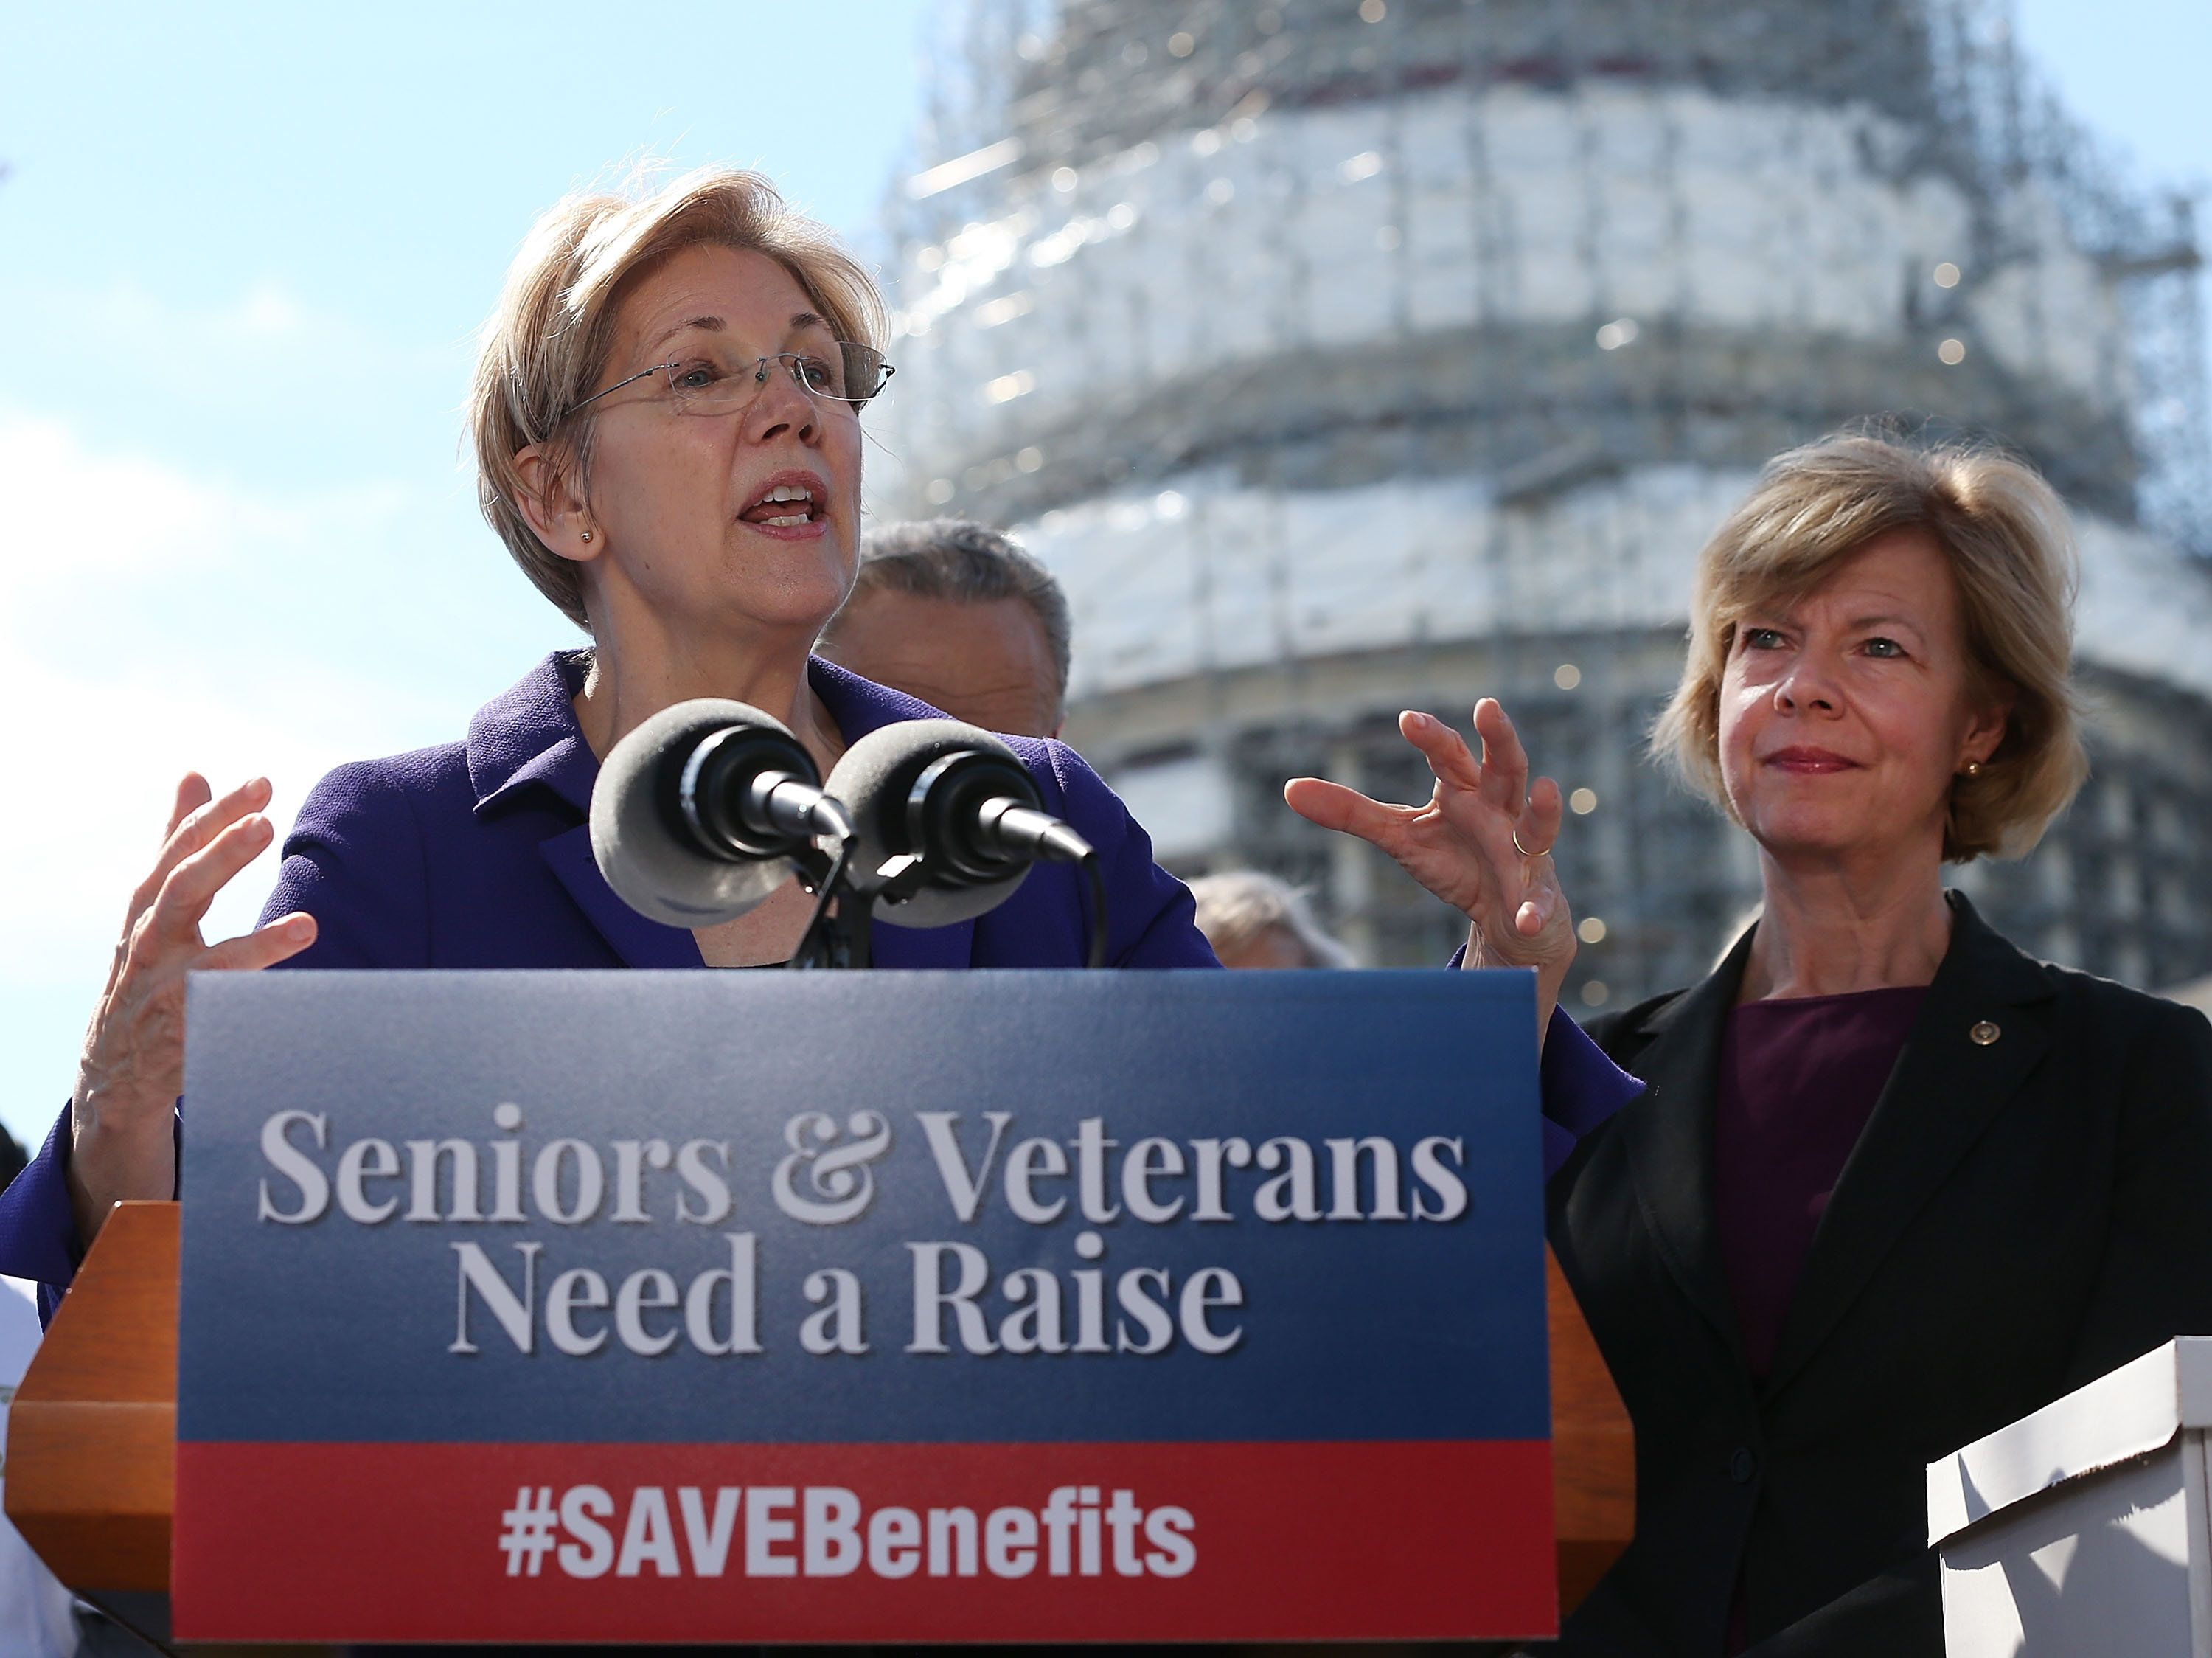 Sen. Elizabeth Warren (D-Mass.) speaks about her bill to give seniors and veterans a one-time payment. Sen. Tammy Baldwi